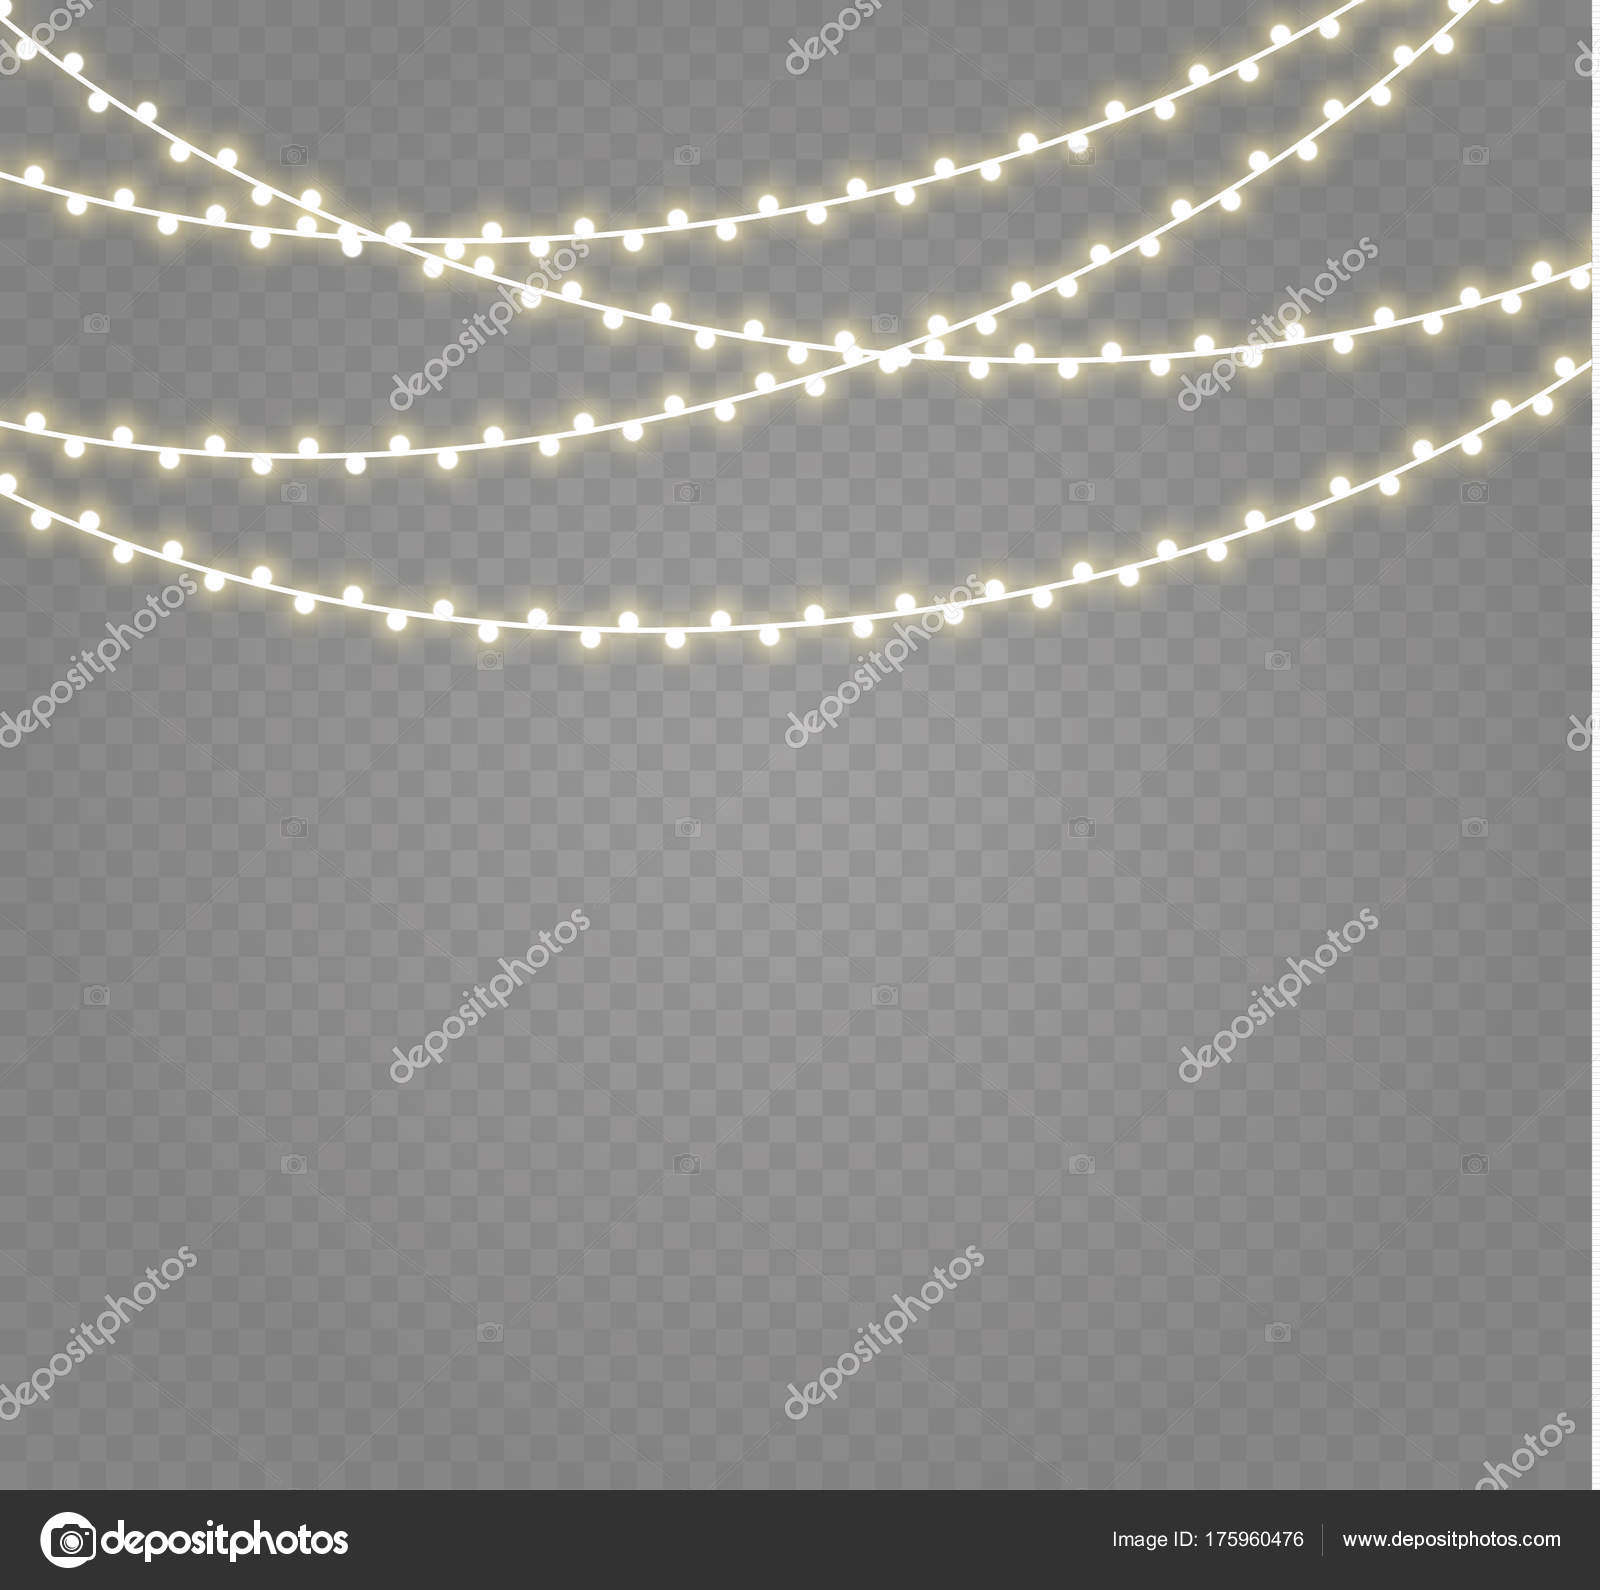 Christmas Lights Isolated On Transparent Background Xmas Glowing Garland Vector By Irina11998877gmail